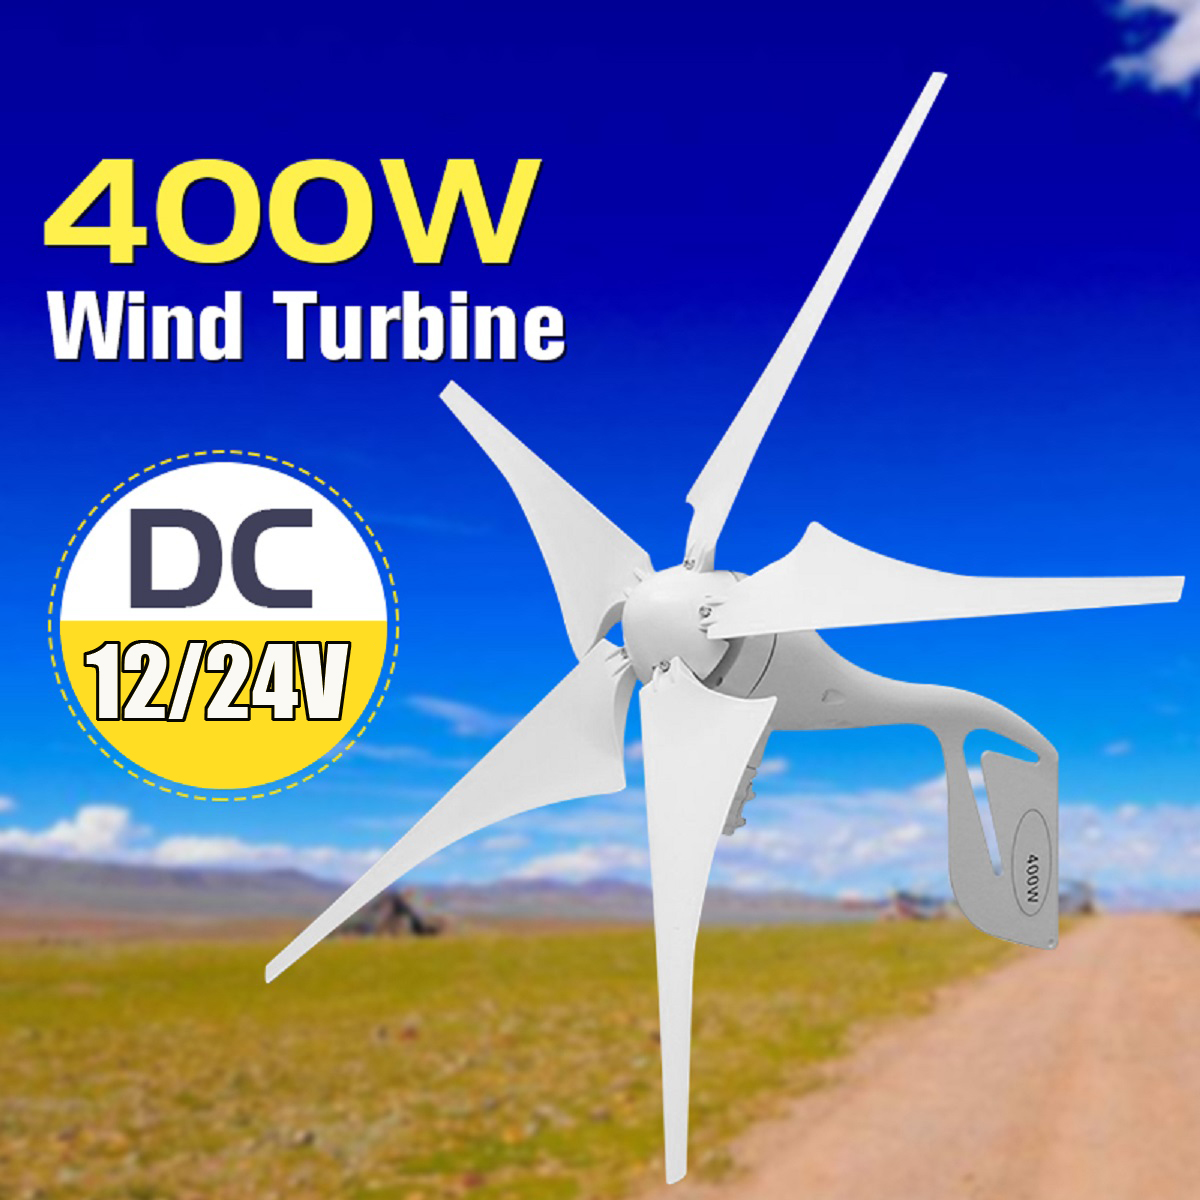 Wind Turbine 400W Wind Power Generator 5 Blades + DC 12V/24V Waterproof Charge Controller 300/600W Wind Energy Turbine Generator 400w wind generator 12v 24v 48v maglev generator wind turbine with water proof controller 600watt 2 blades 1 3m started